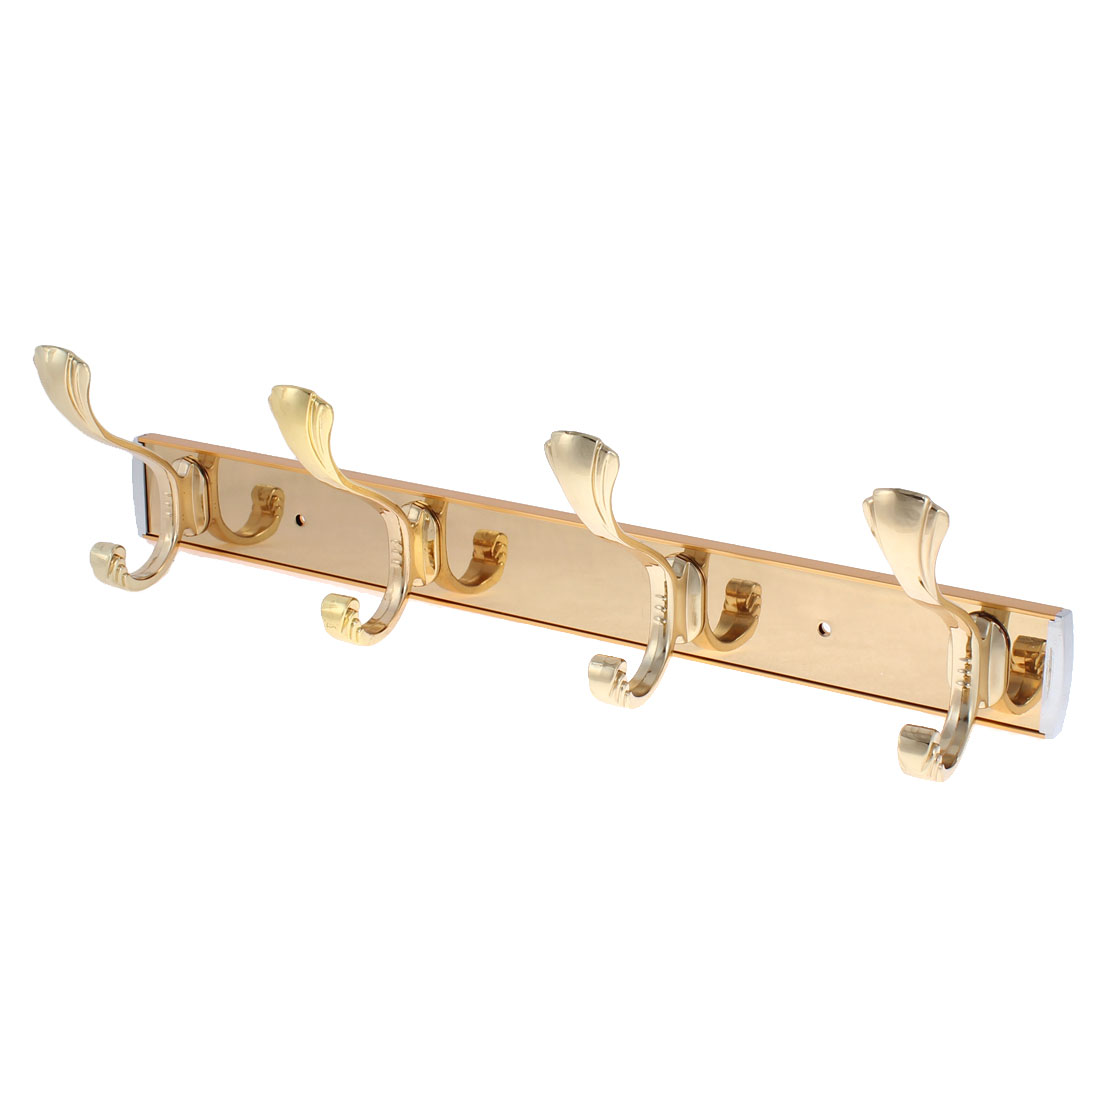 "Coat Hanger Wall Mounted 4 Hooks Rack Gold Tone 15"" Length"